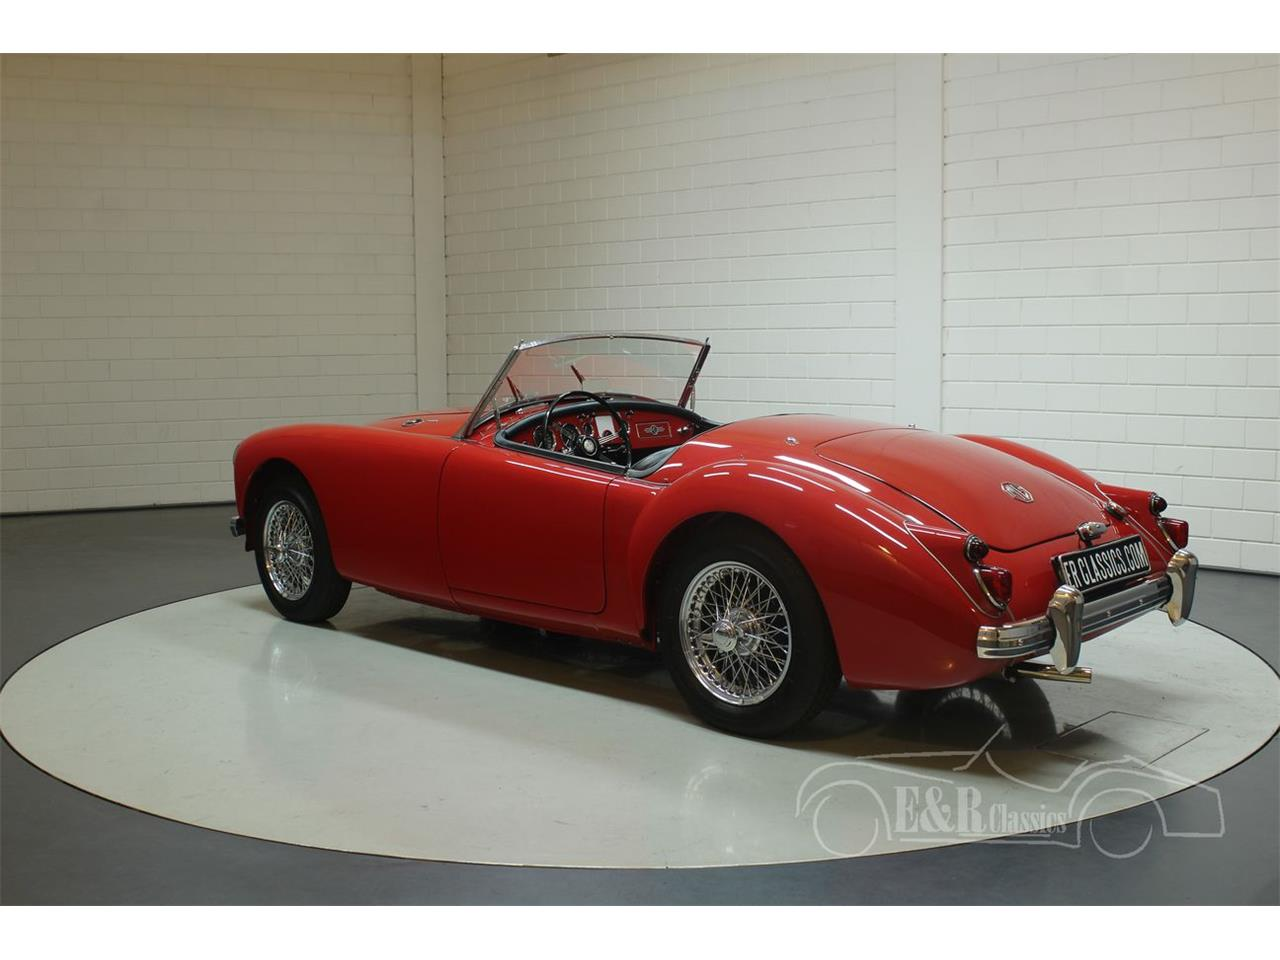 Large Picture of Classic 1959 MGA located in - Keine Angabe - - $56,500.00 - PGST